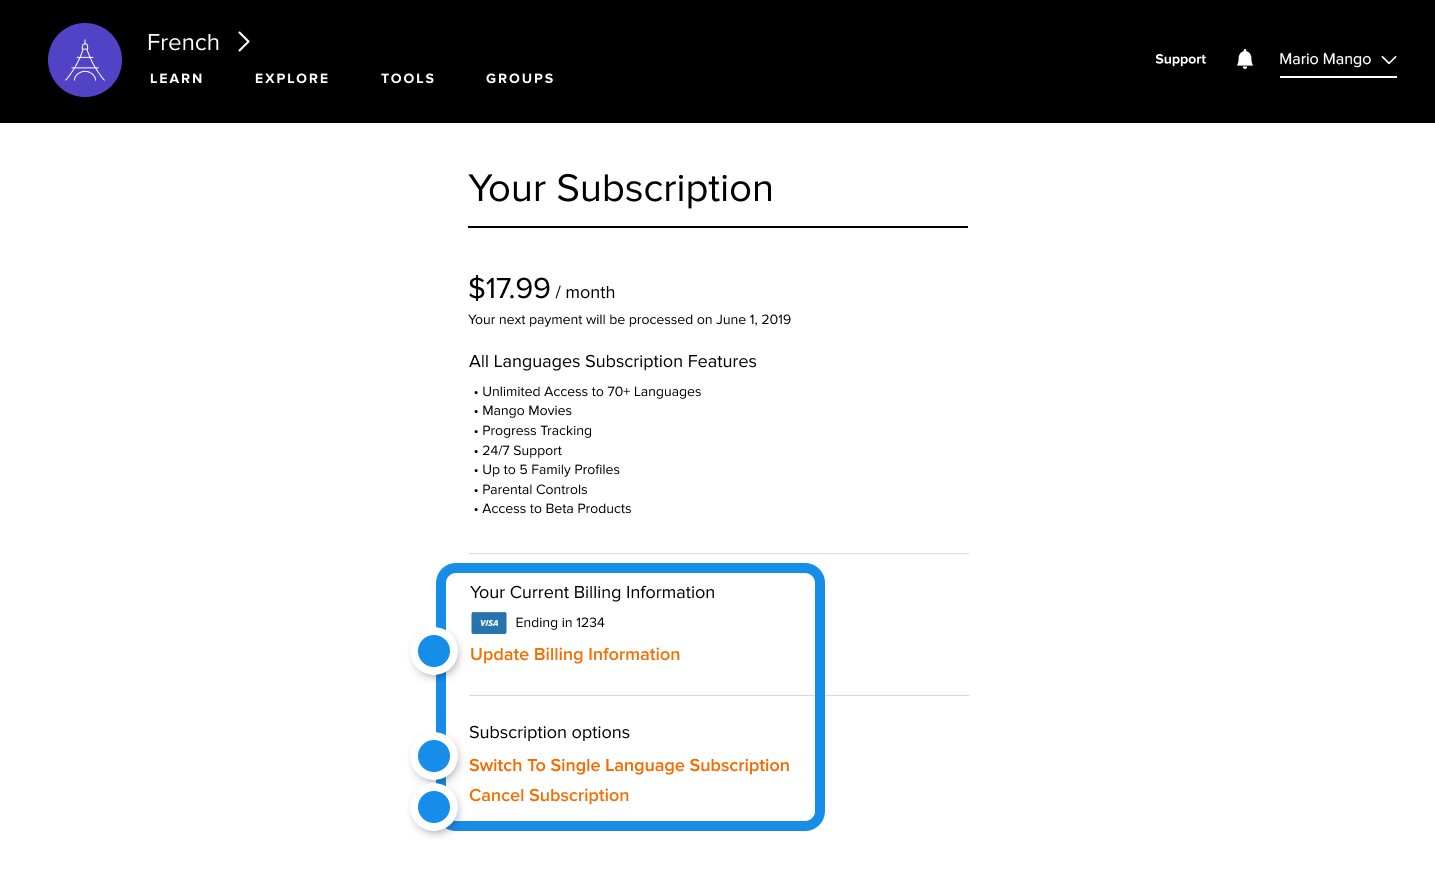 Blue Dots point to where changes can be made to the subscription near the bottom of the page